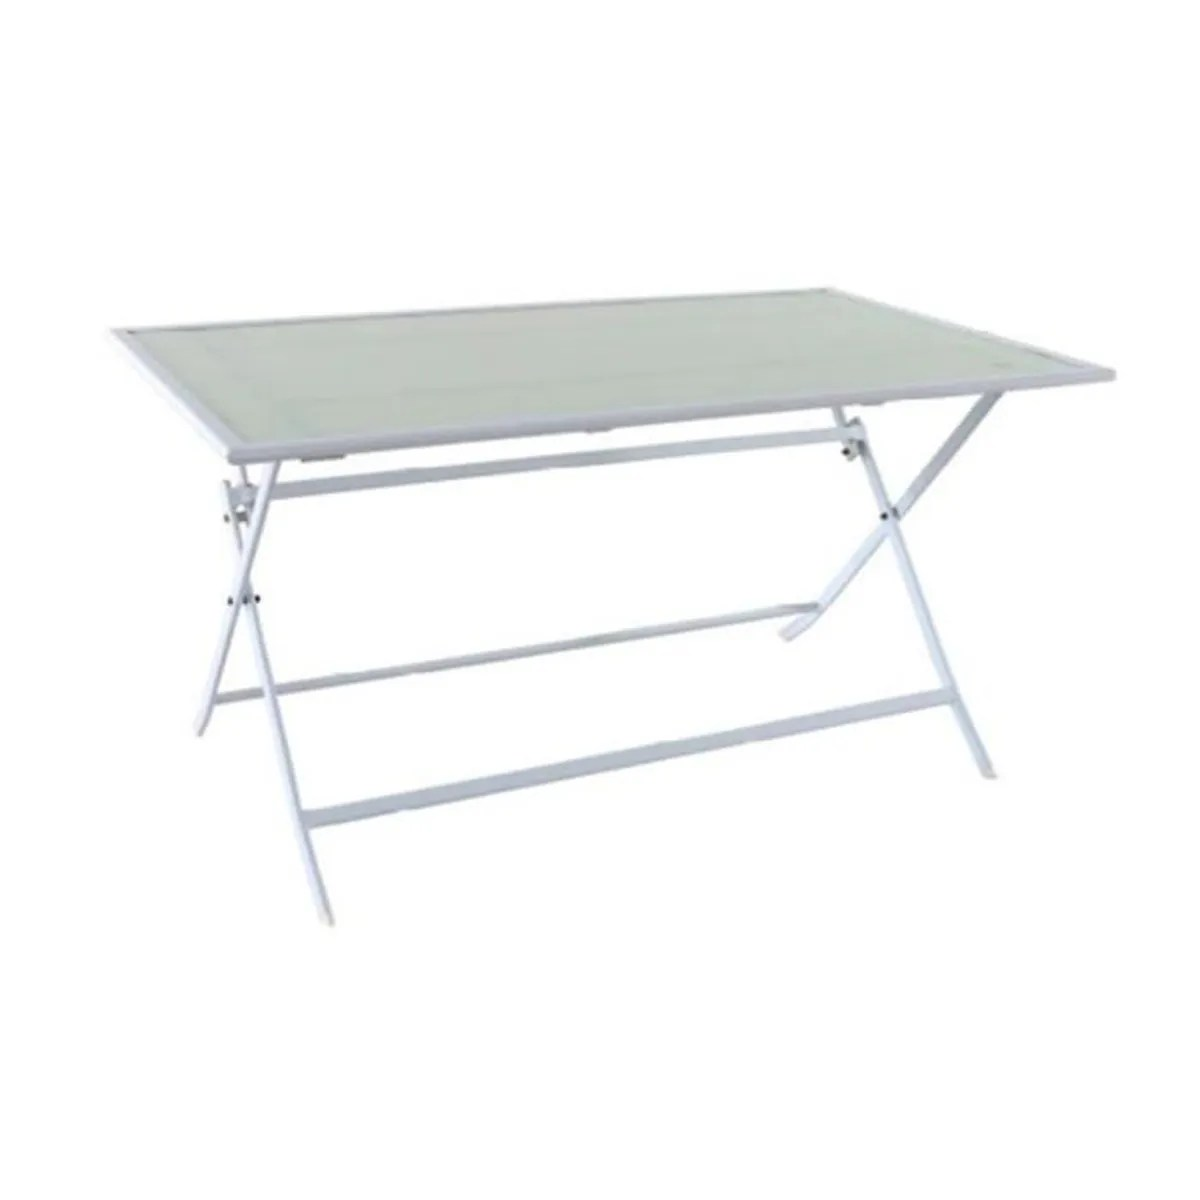 Table Pliante Exterieur Table Pliante En Fer Coloris Blanc 140 X 80 Cm